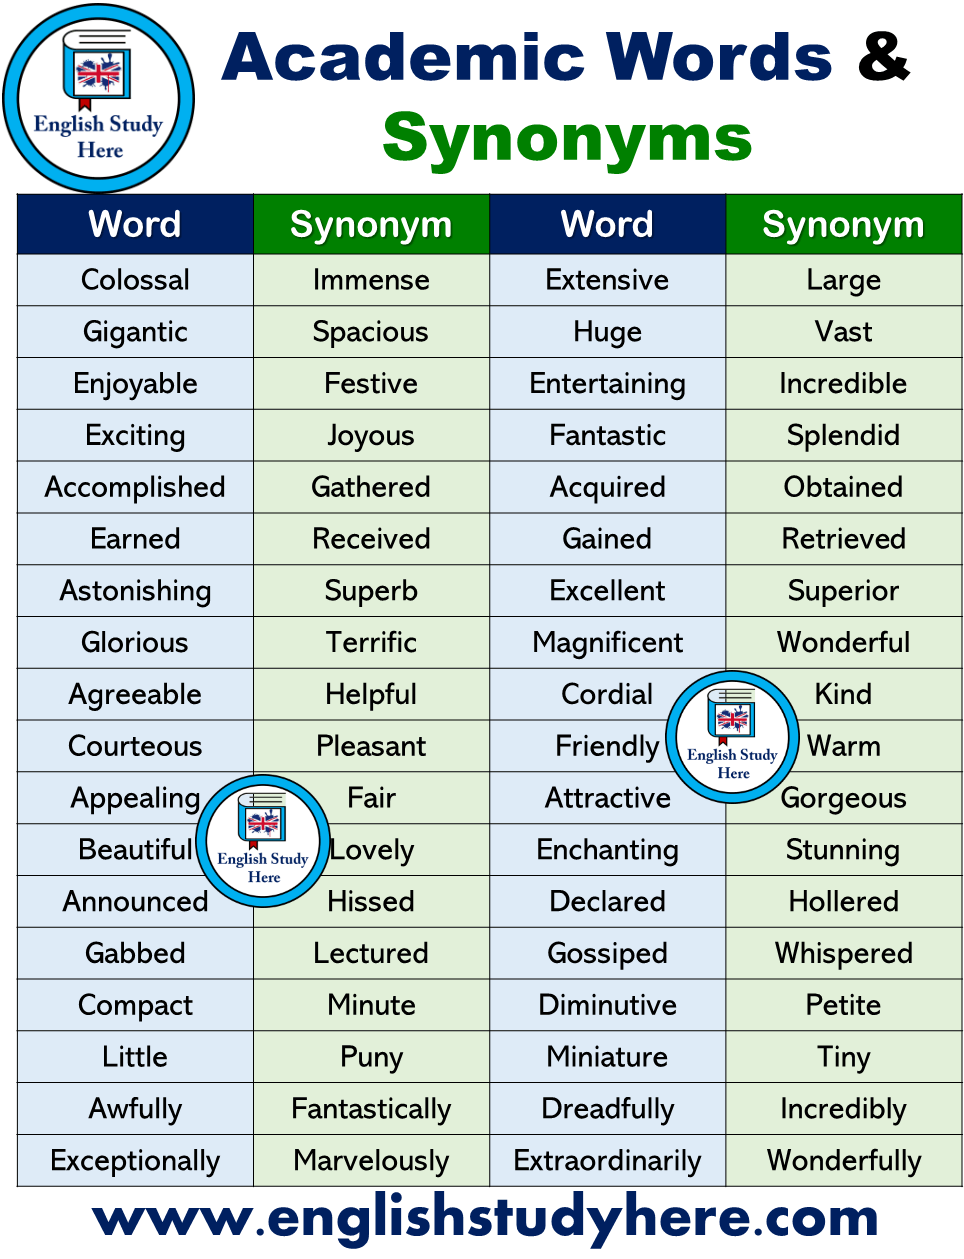 Academic Words and Synonyms in English